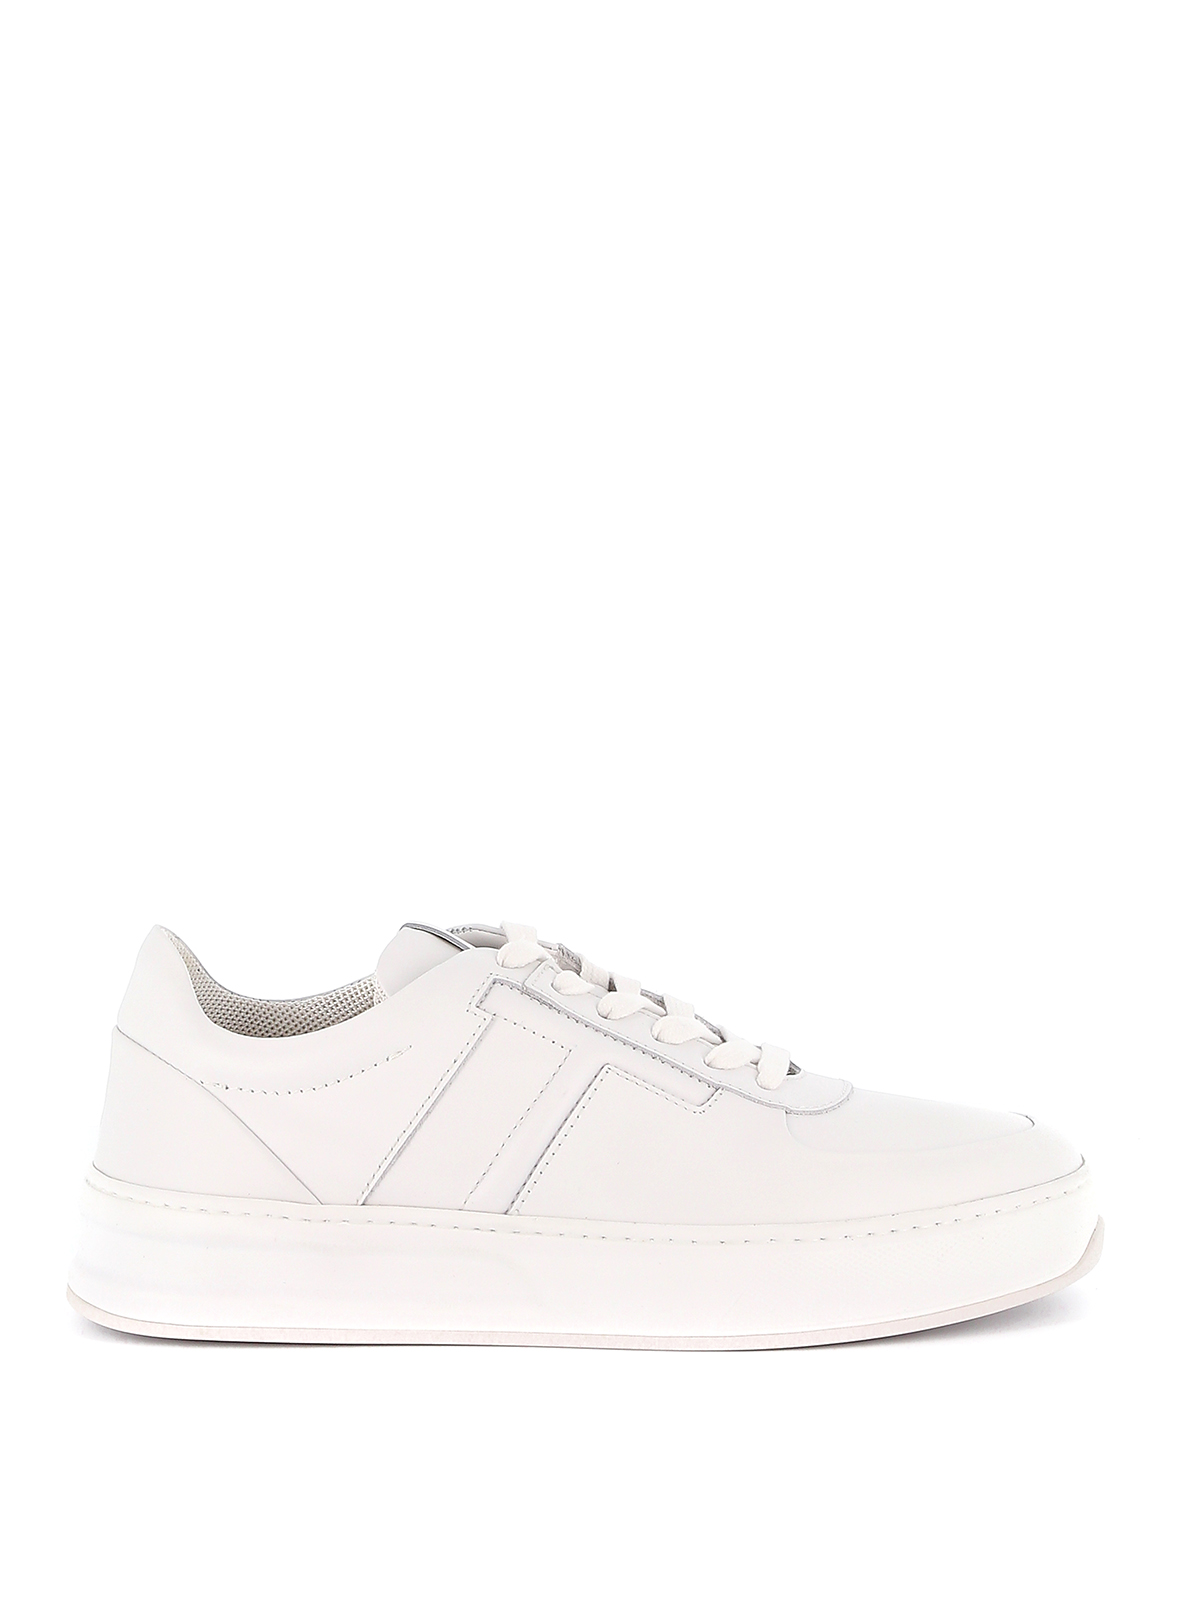 Tod's Leathers WHITE LEATHER SNEAKER